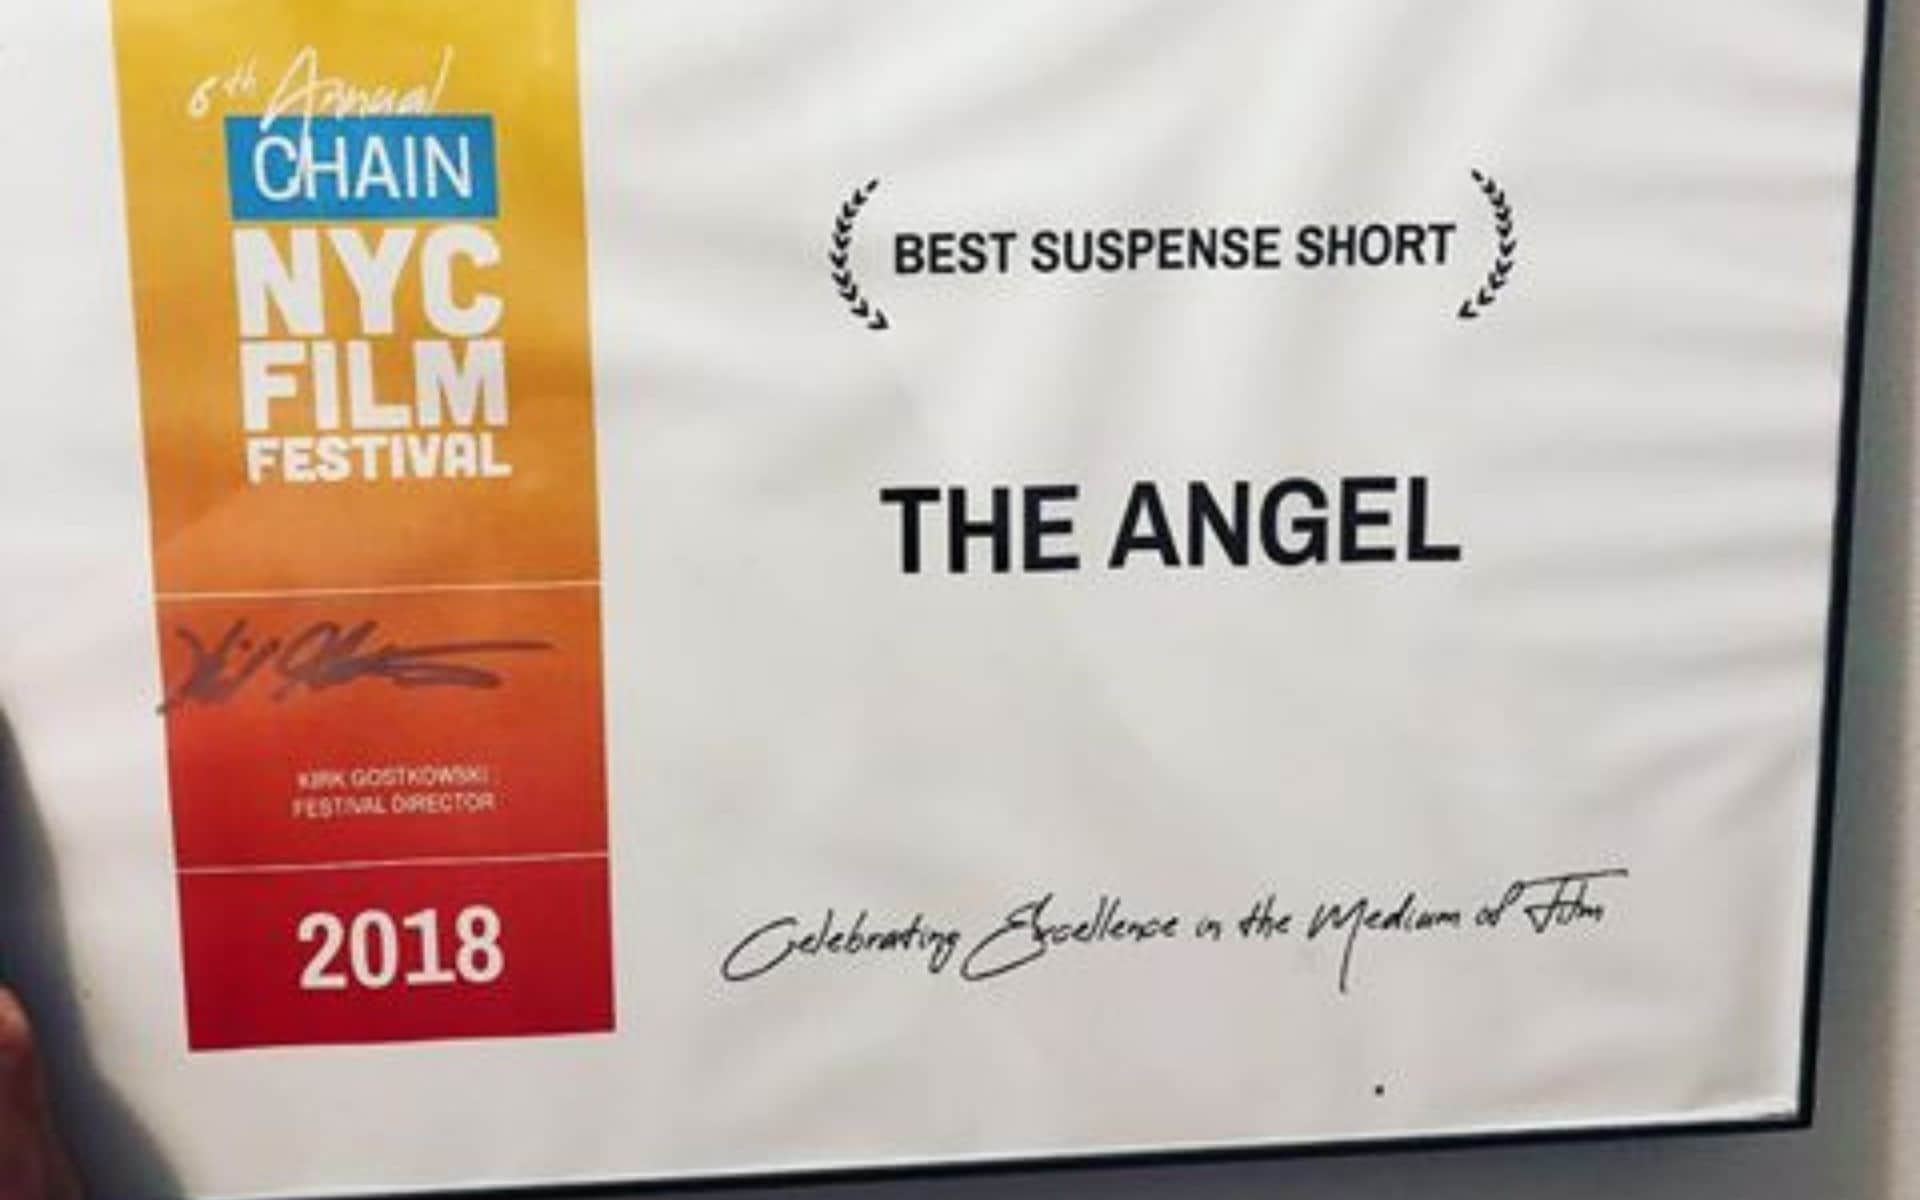 Philippe Joly - The Angel wins Best Suspense Short film at NYC Chain Film Festival